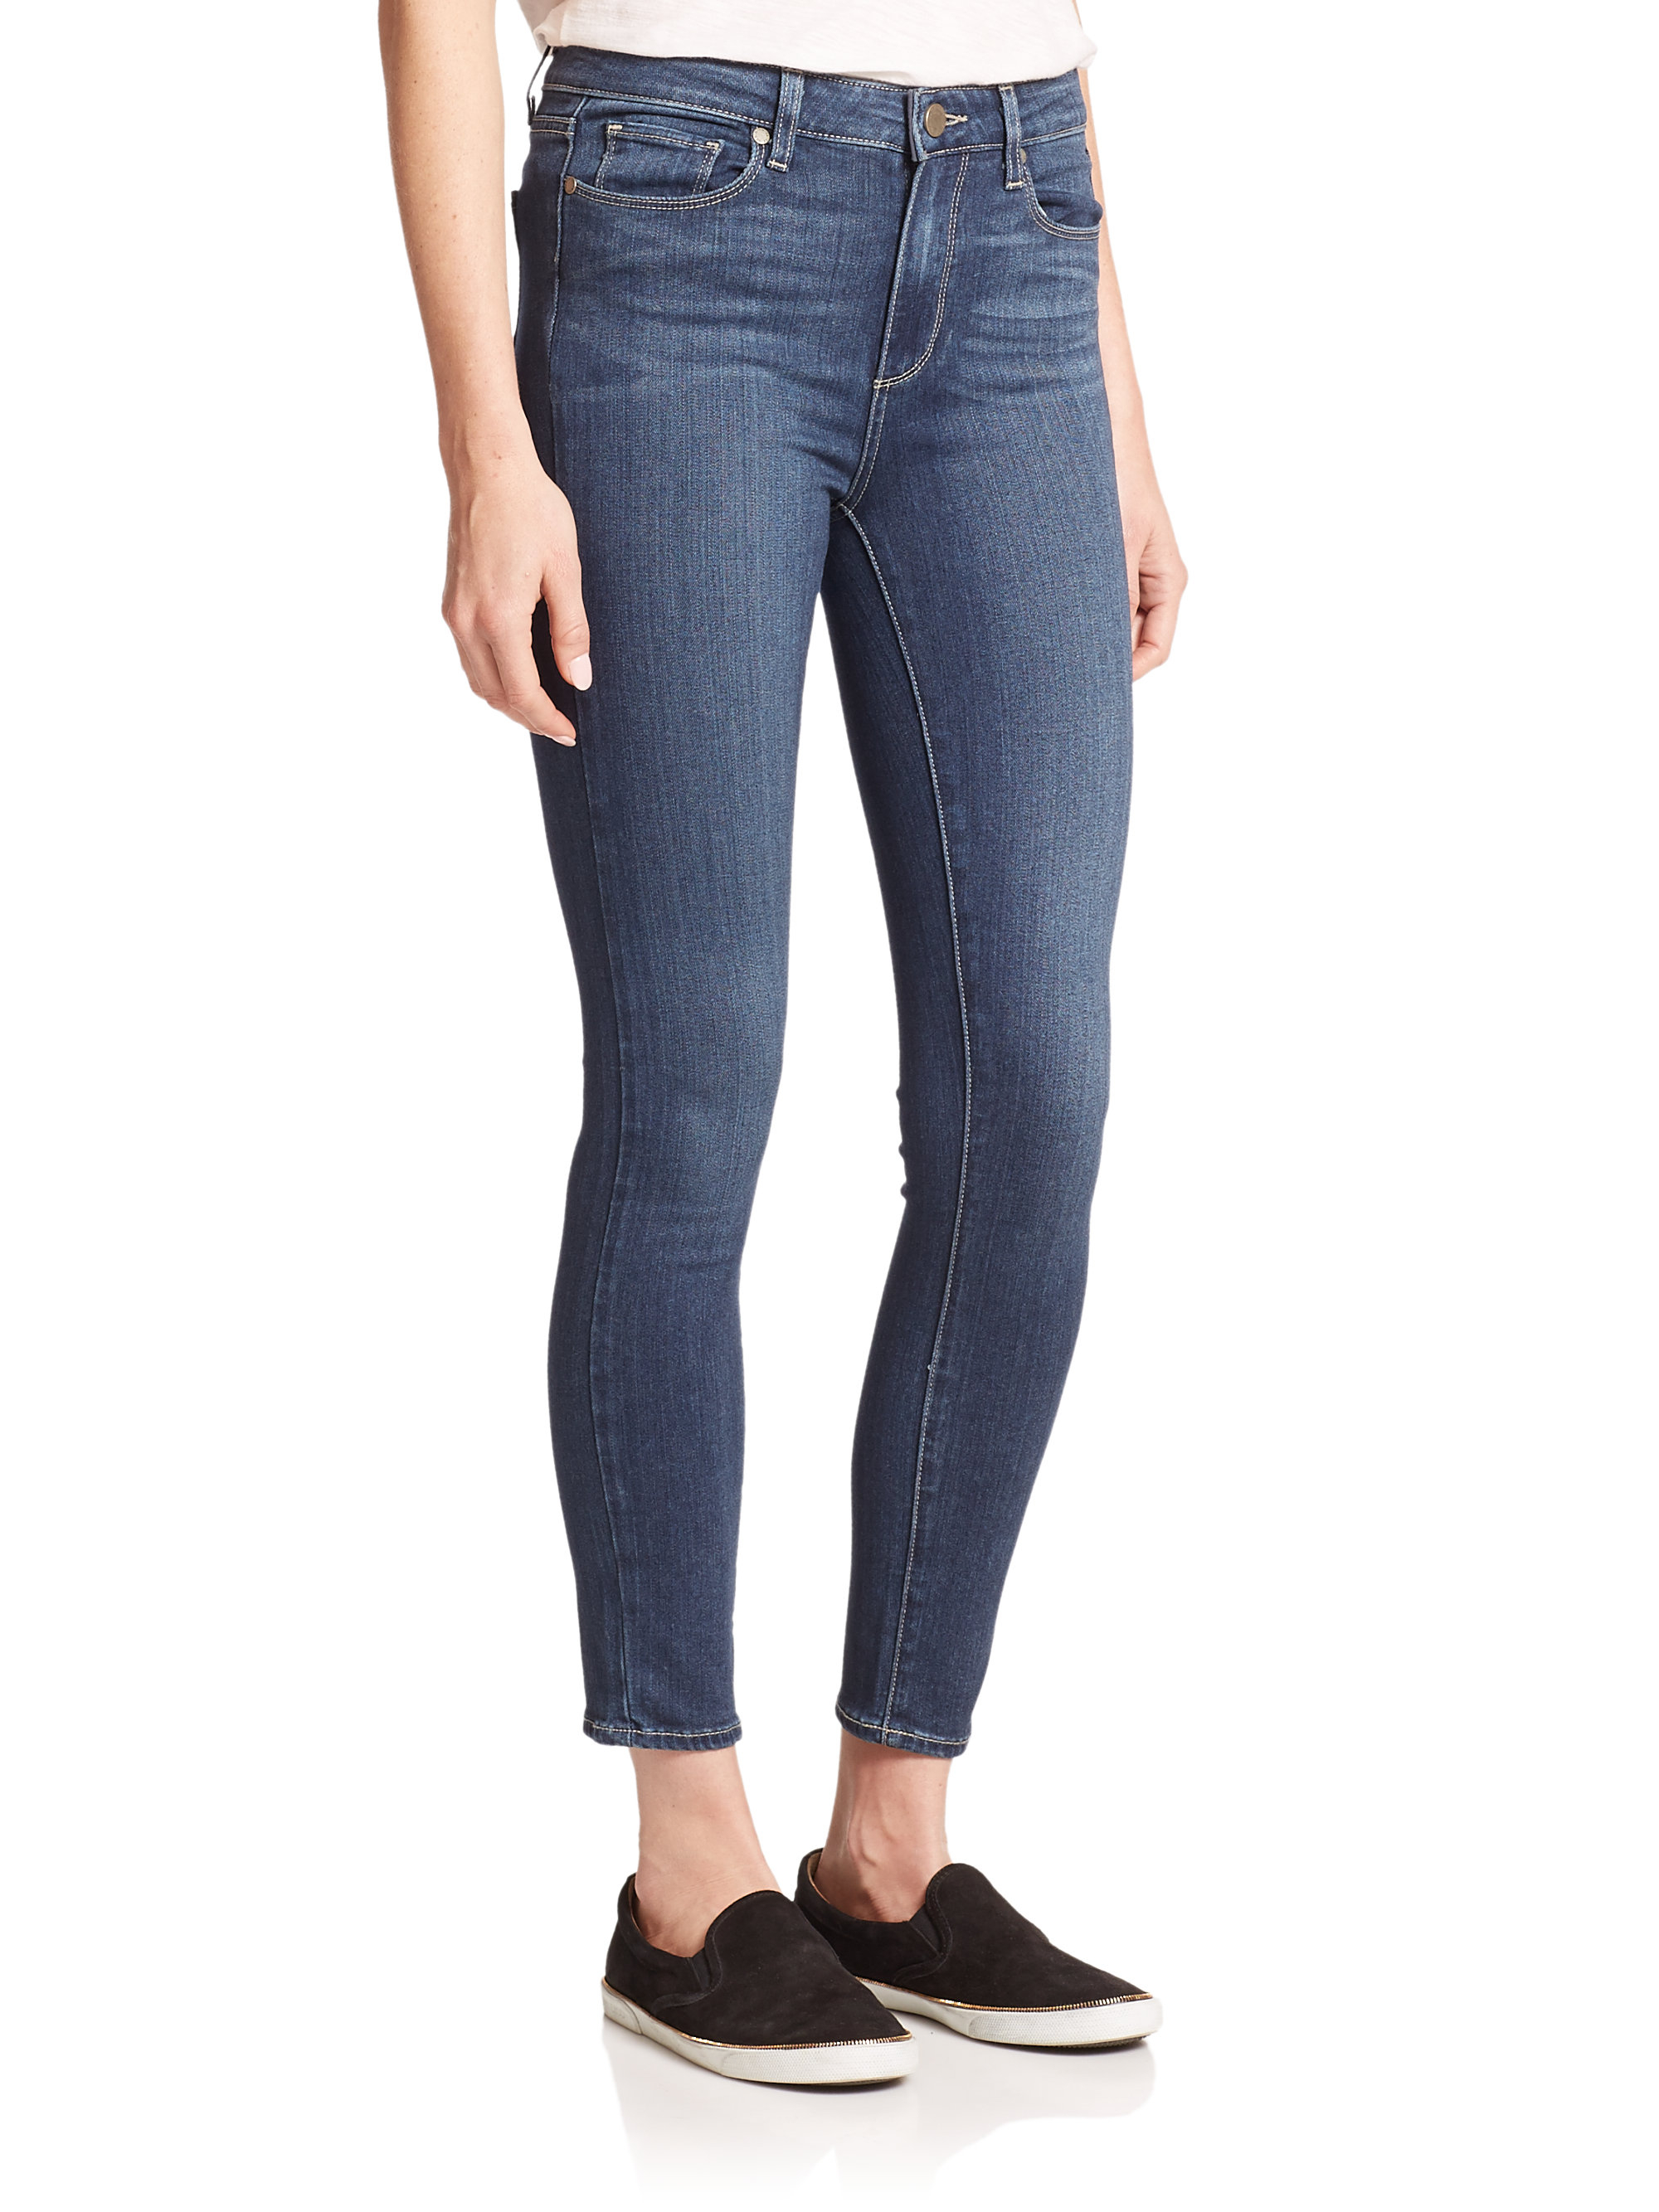 Shop Online for the Latest Designer Ankle High Waisted Jeans for Women at disborunmaba.ga FREE SHIPPING AVAILABLE! Macy's Presents: The Edit - A curated mix of fashion and inspiration Check It Out Free Shipping with $99 purchase + Free Store Pickup.